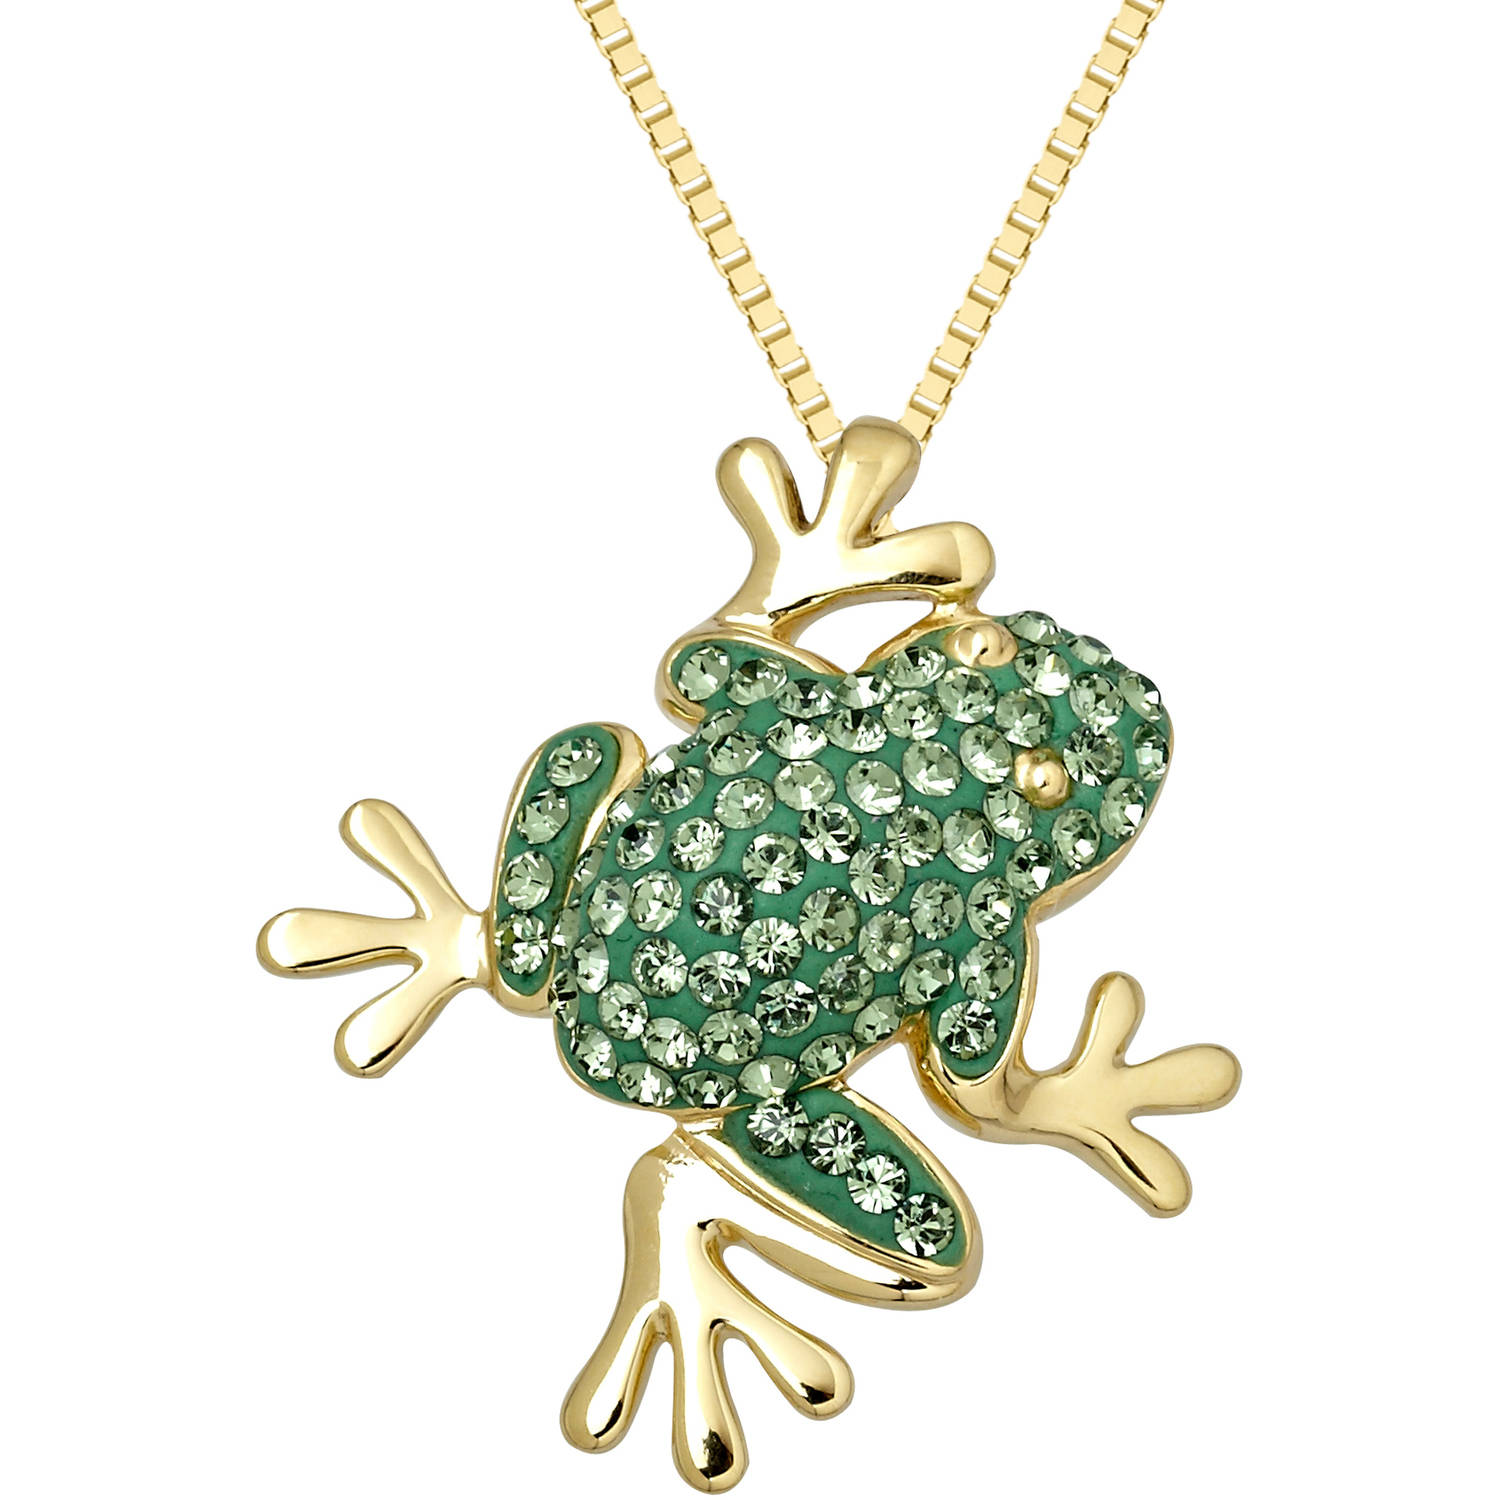 Luminesse 18kt Gold over Sterling Silver Frog Pendant made with